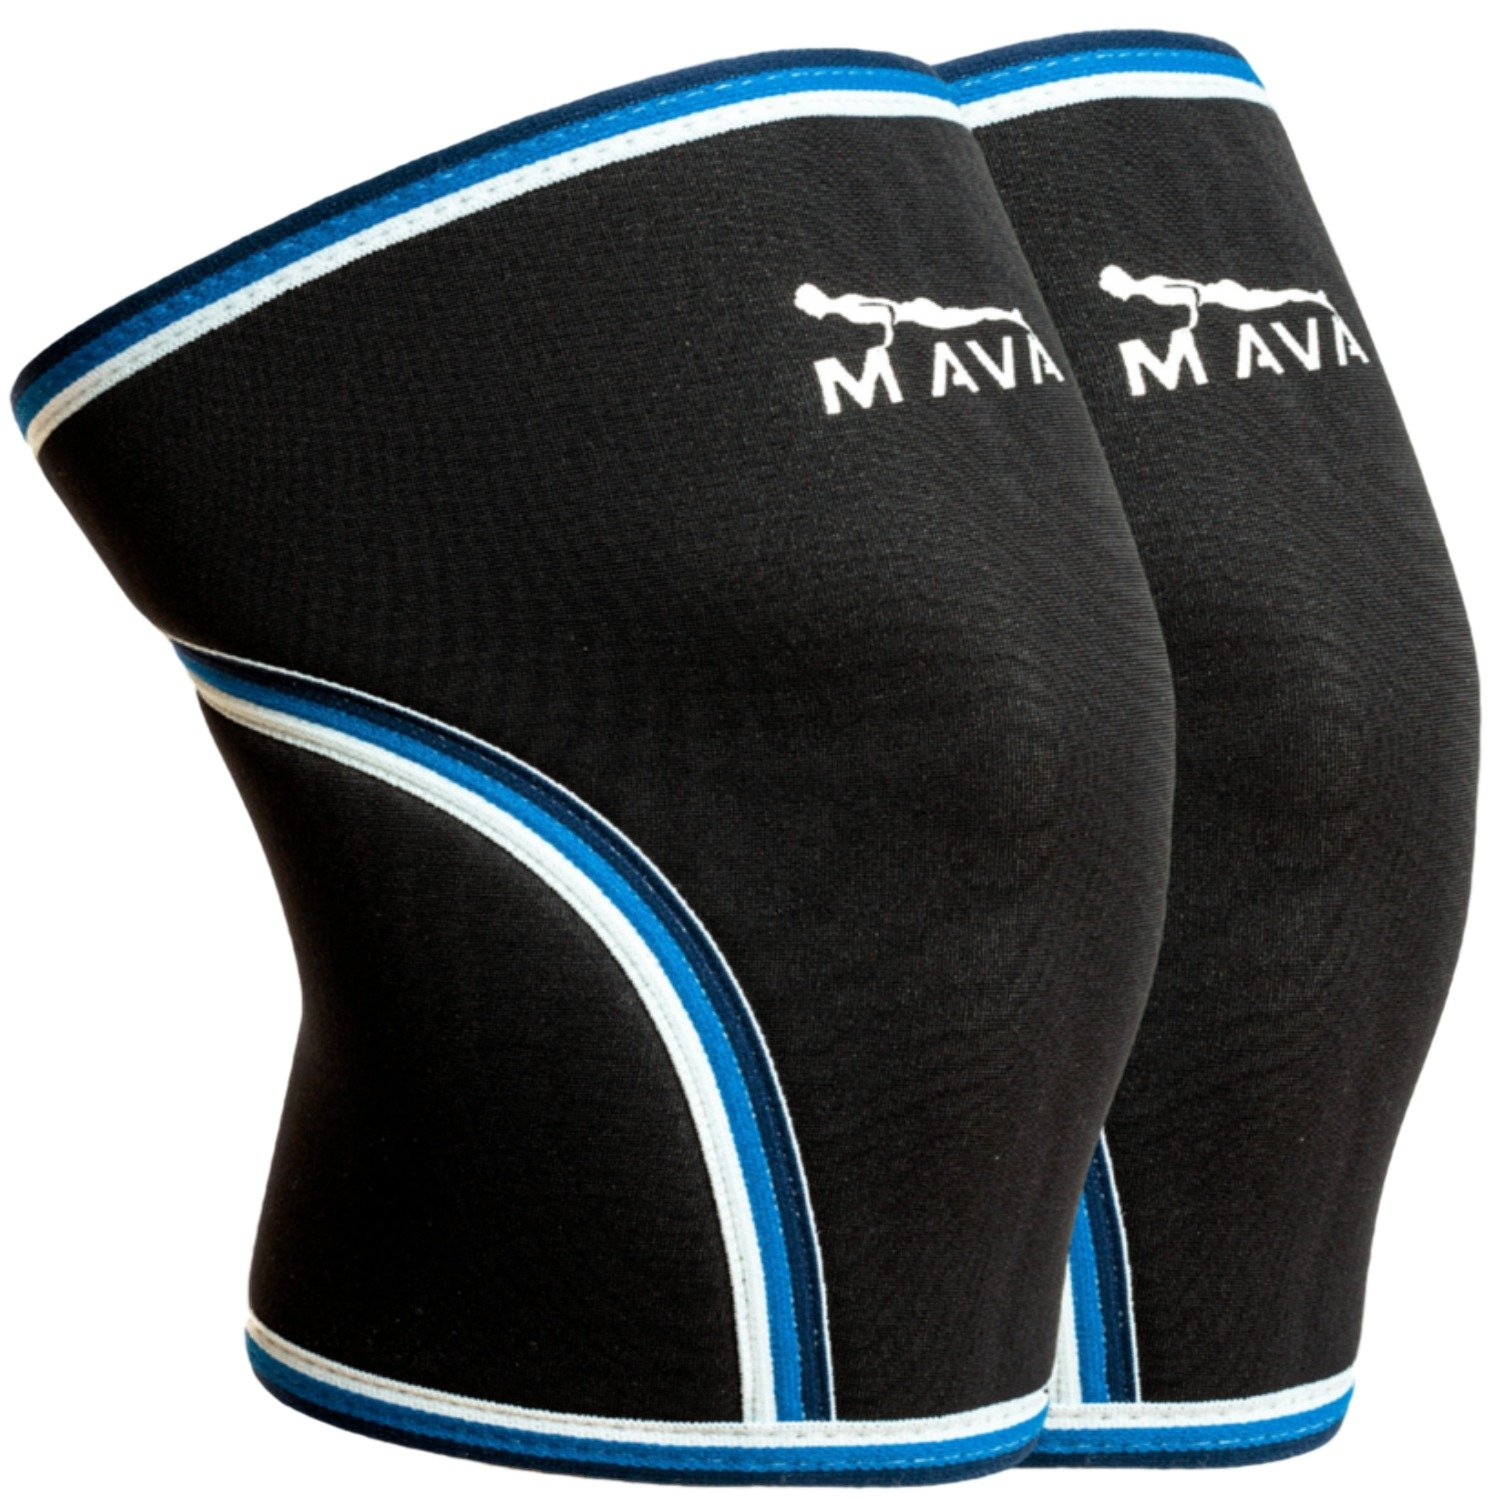 Mava Sports Knee Compressions Sleeves